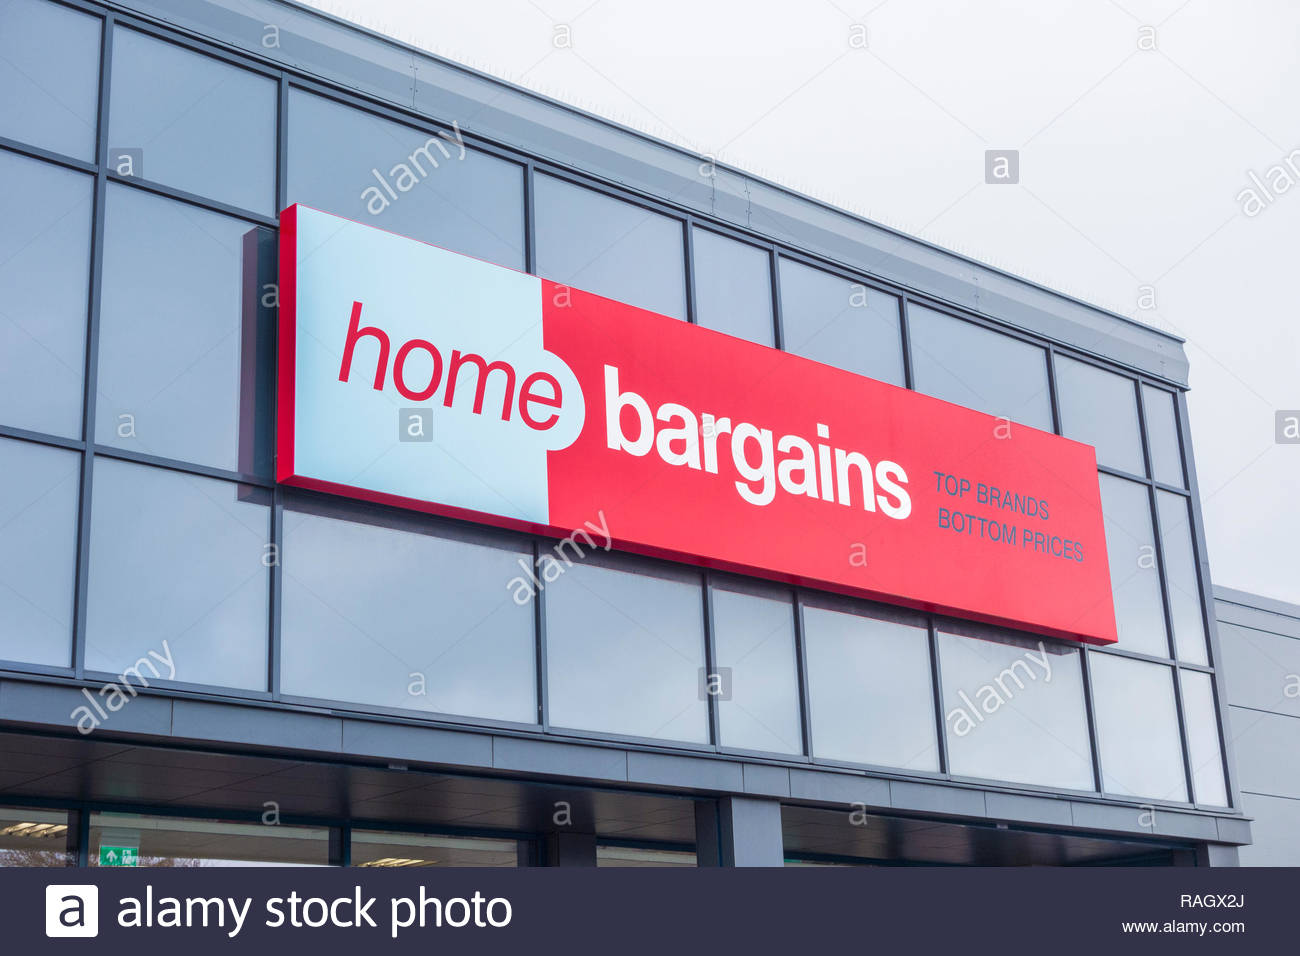 Sign on Home Bargains store in Westgate, Morecambe, Lancashire, England, UK, offering Top Brands at Bottom Prices - Stock Image